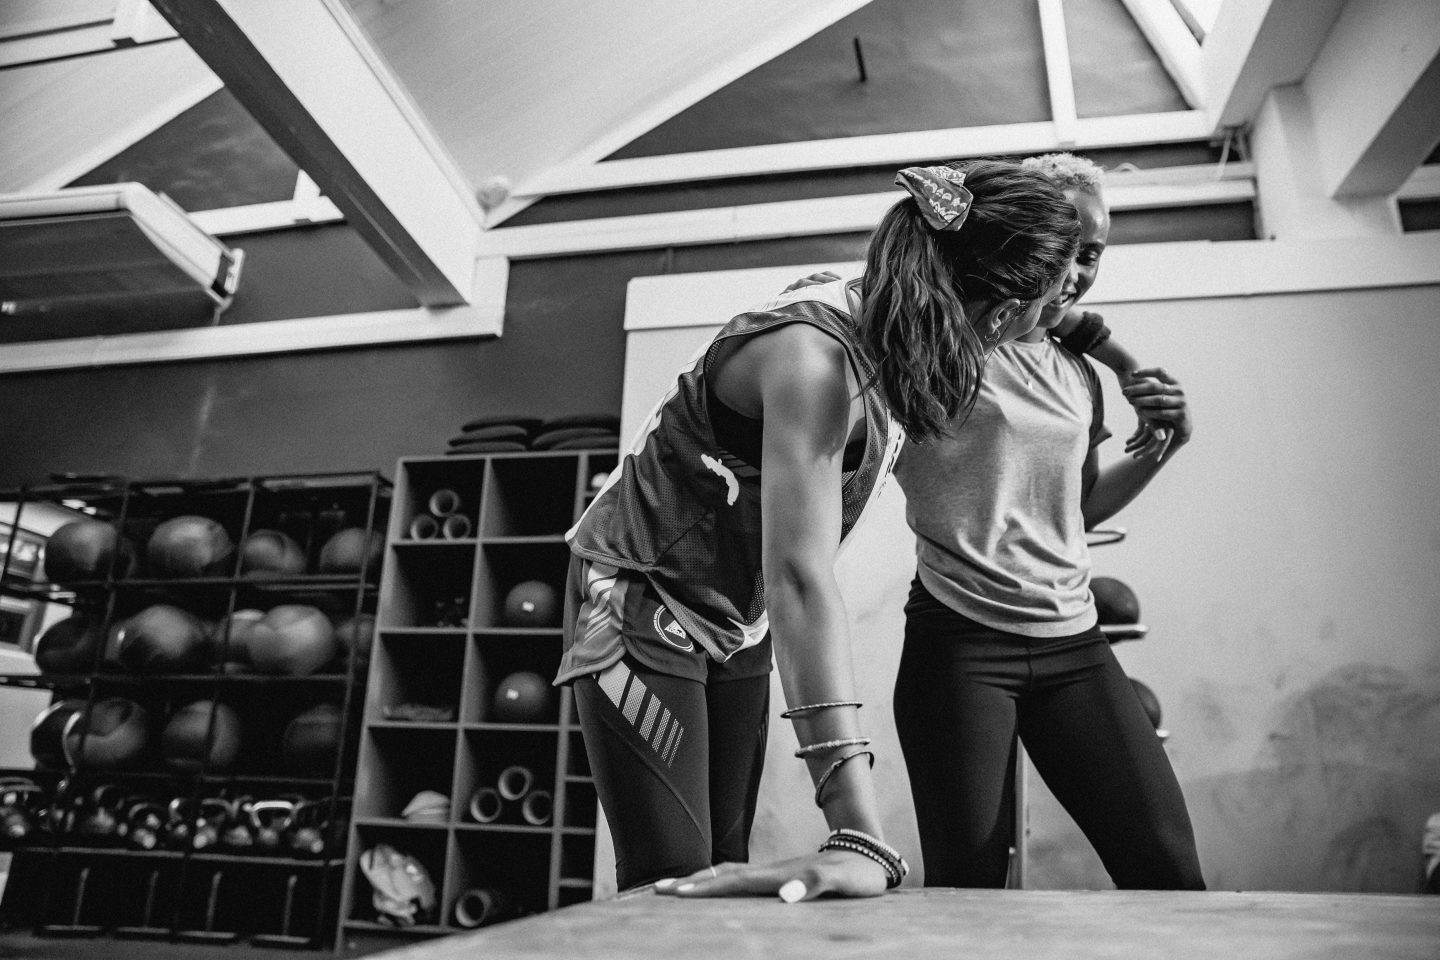 Two women standing in a gym room, one leaning on the other.